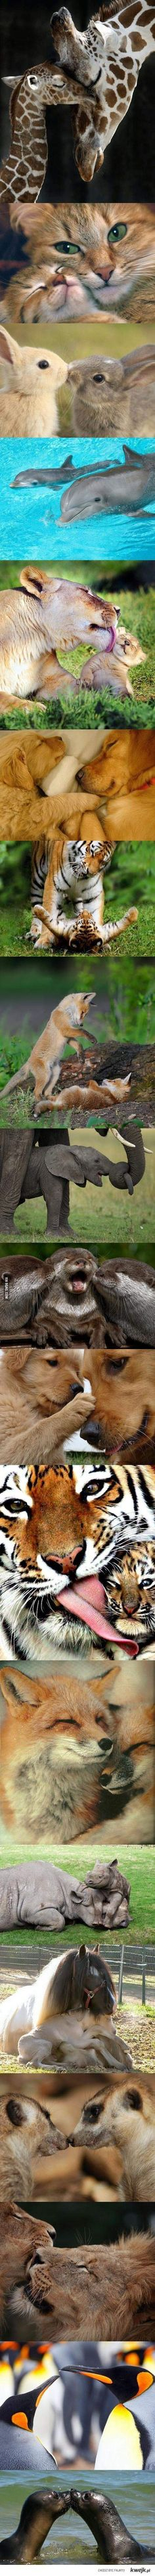 Cute baby animals & their parents